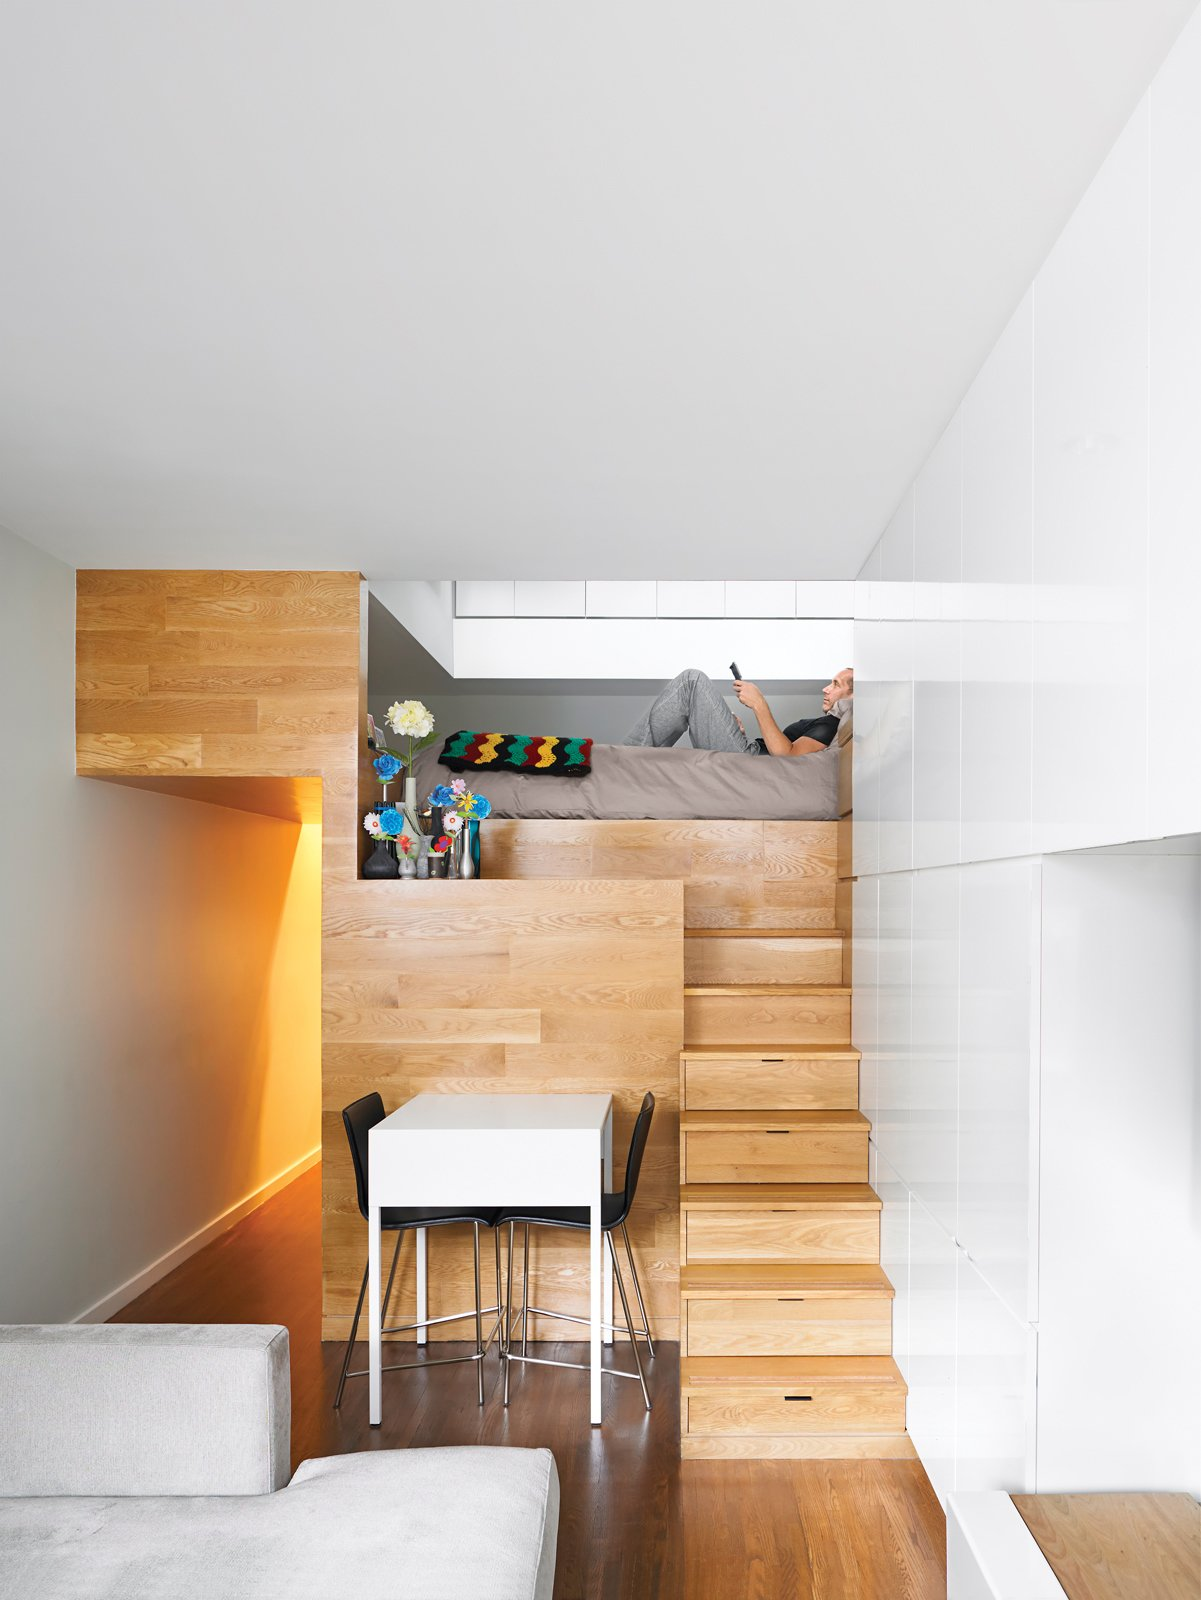 Seven steps doubling as storage drawers lead up to the bedroom of Michael Pozner's not-quite-500-square-foot aerie in Greenwich Village. The bedroom is designed for two people: Both sides of the bed have reading lights and plugs for cell phones and computer chargers.  Bedrooms by Dwell from Beautiful Bedrooms